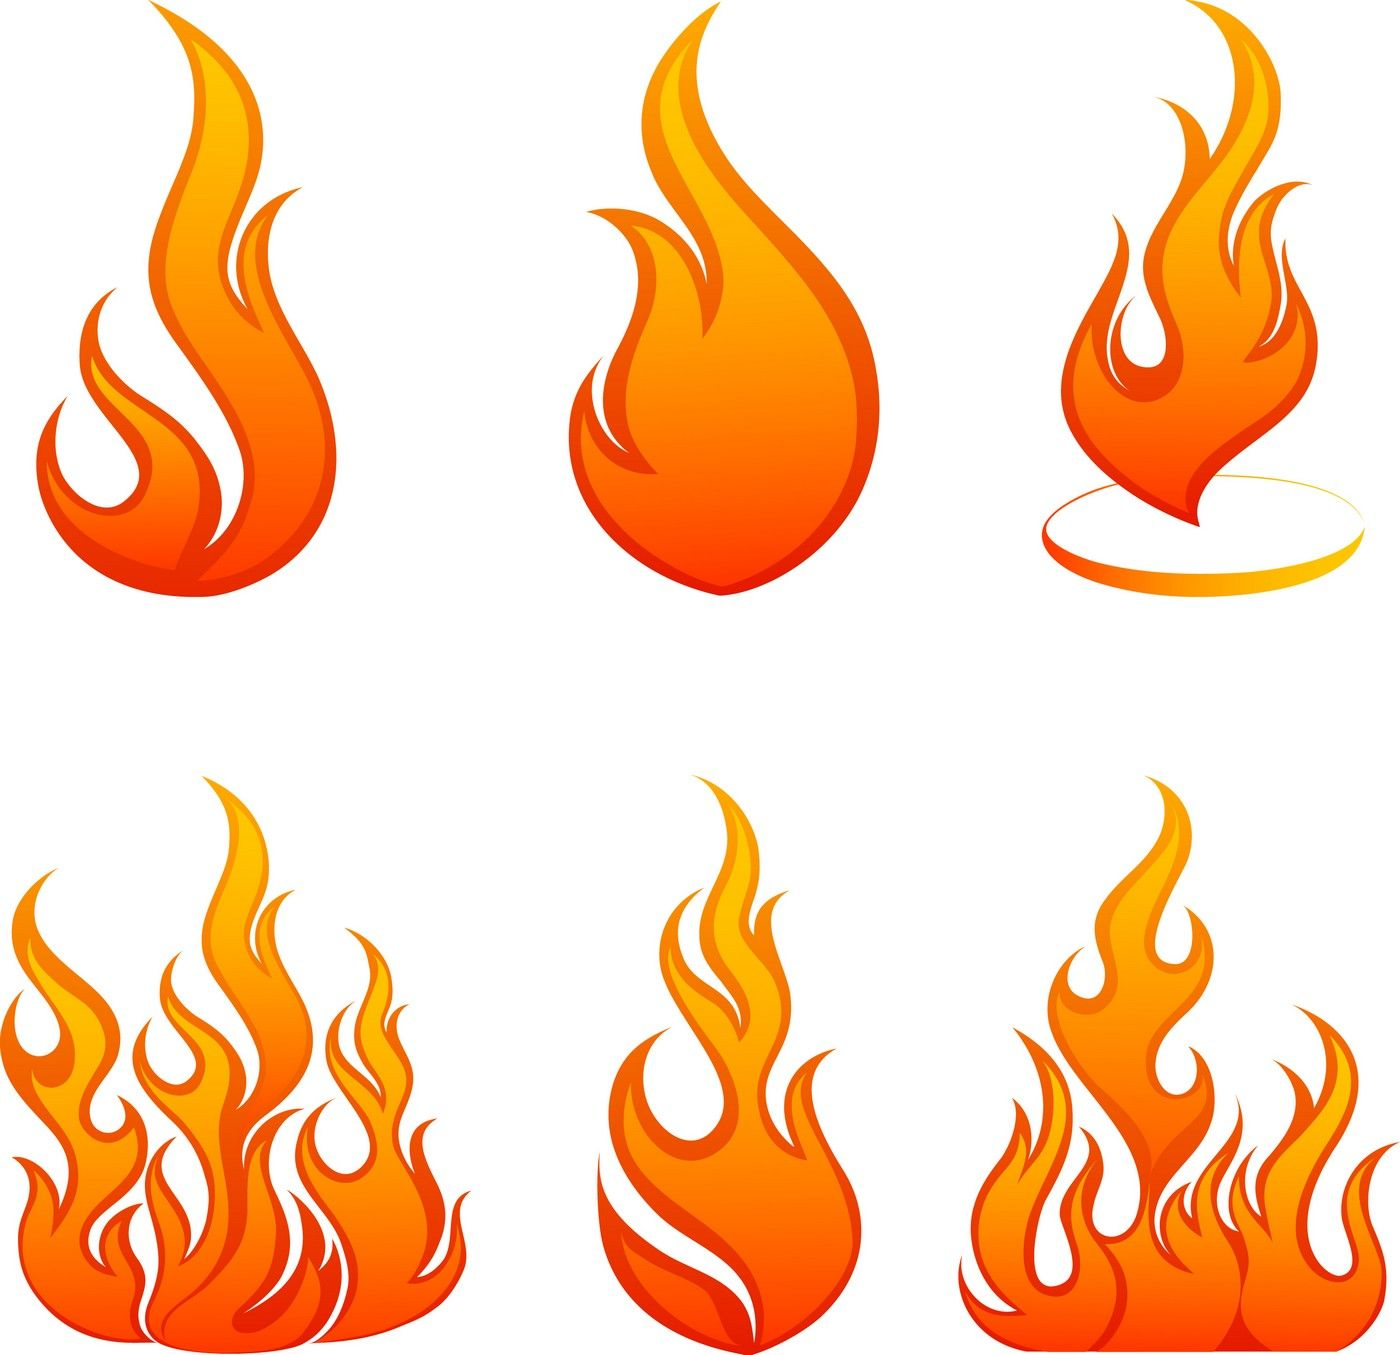 flame fire 01 vector eps free download logo icons brand emblems rh pinterest com flames vector art free flames vector art